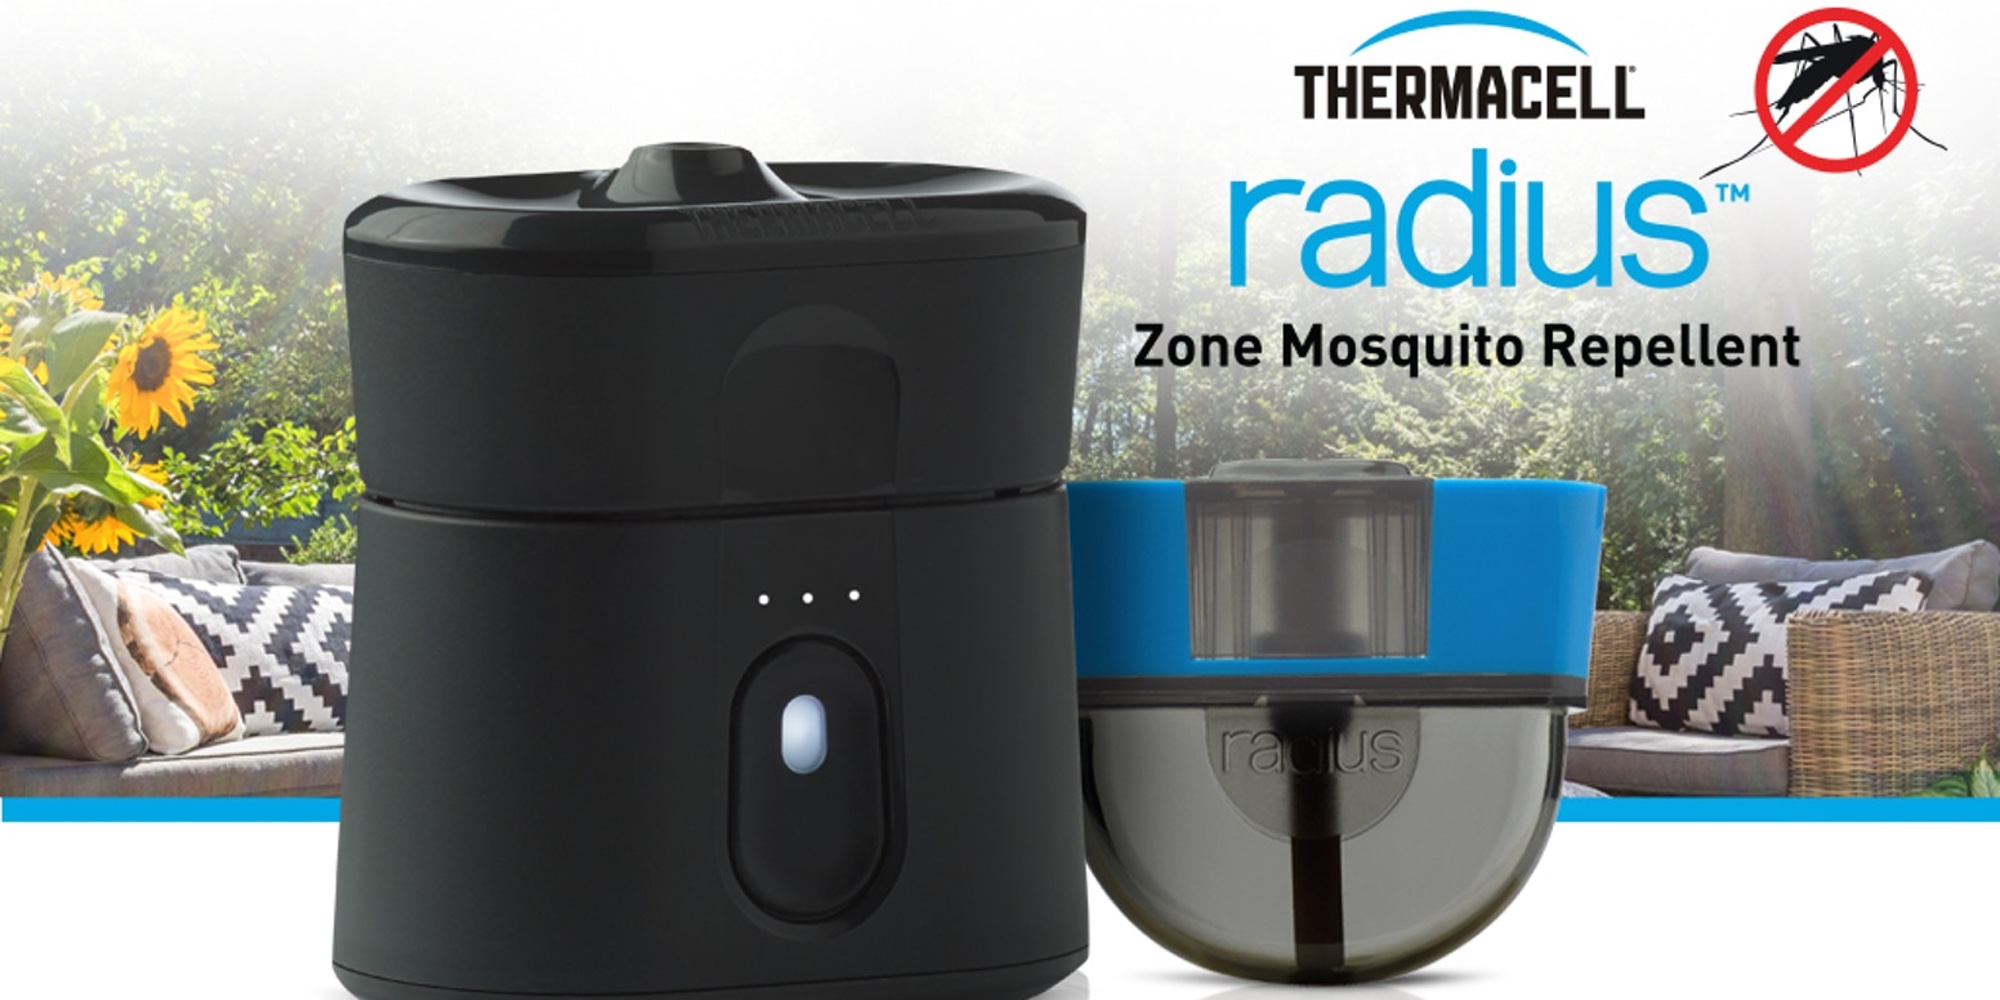 Radius is a rechargeable device that allows you to keep mosquitoes away without sprays